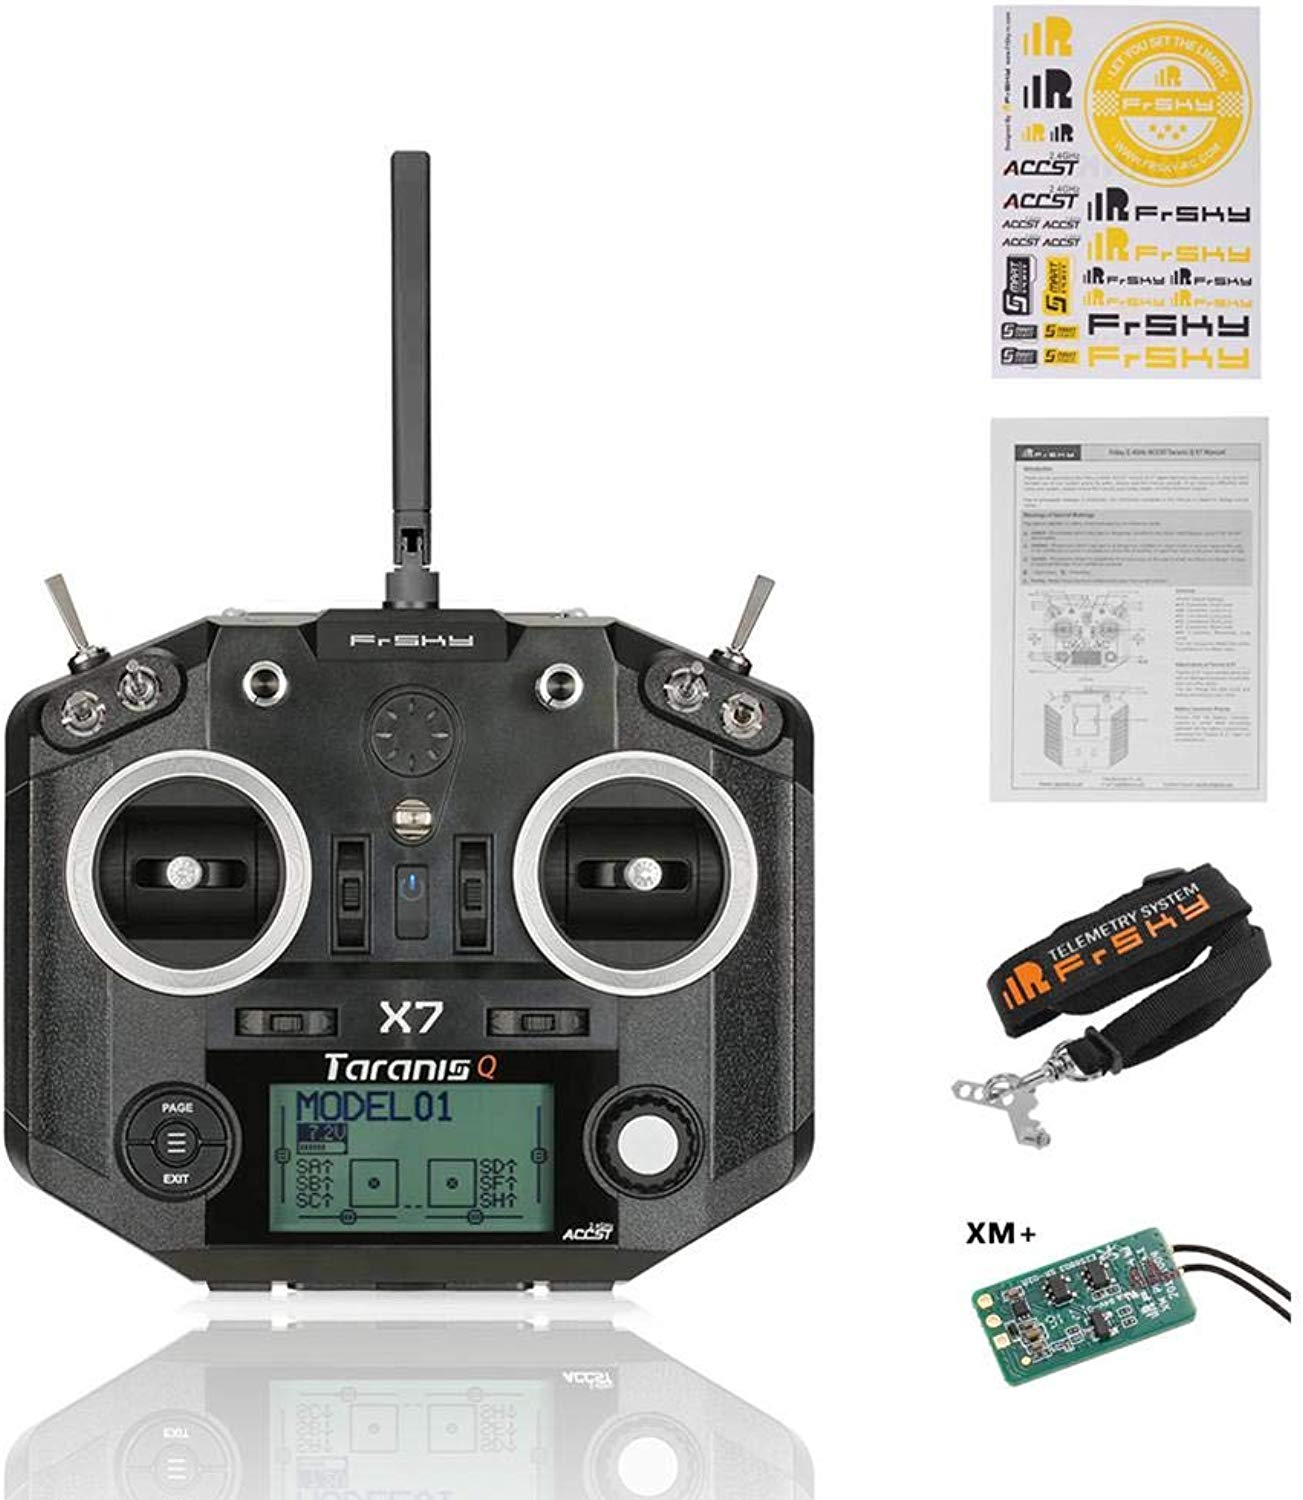 IBellete Radiocouomodo RC Trasmettitore, Frcielo Taranis Q X7 Transmitter 16CH ACCST 2.4GHz RC Transmitter Compatible con Frcielo Receiver per FPV Racing Drone Quadcopter